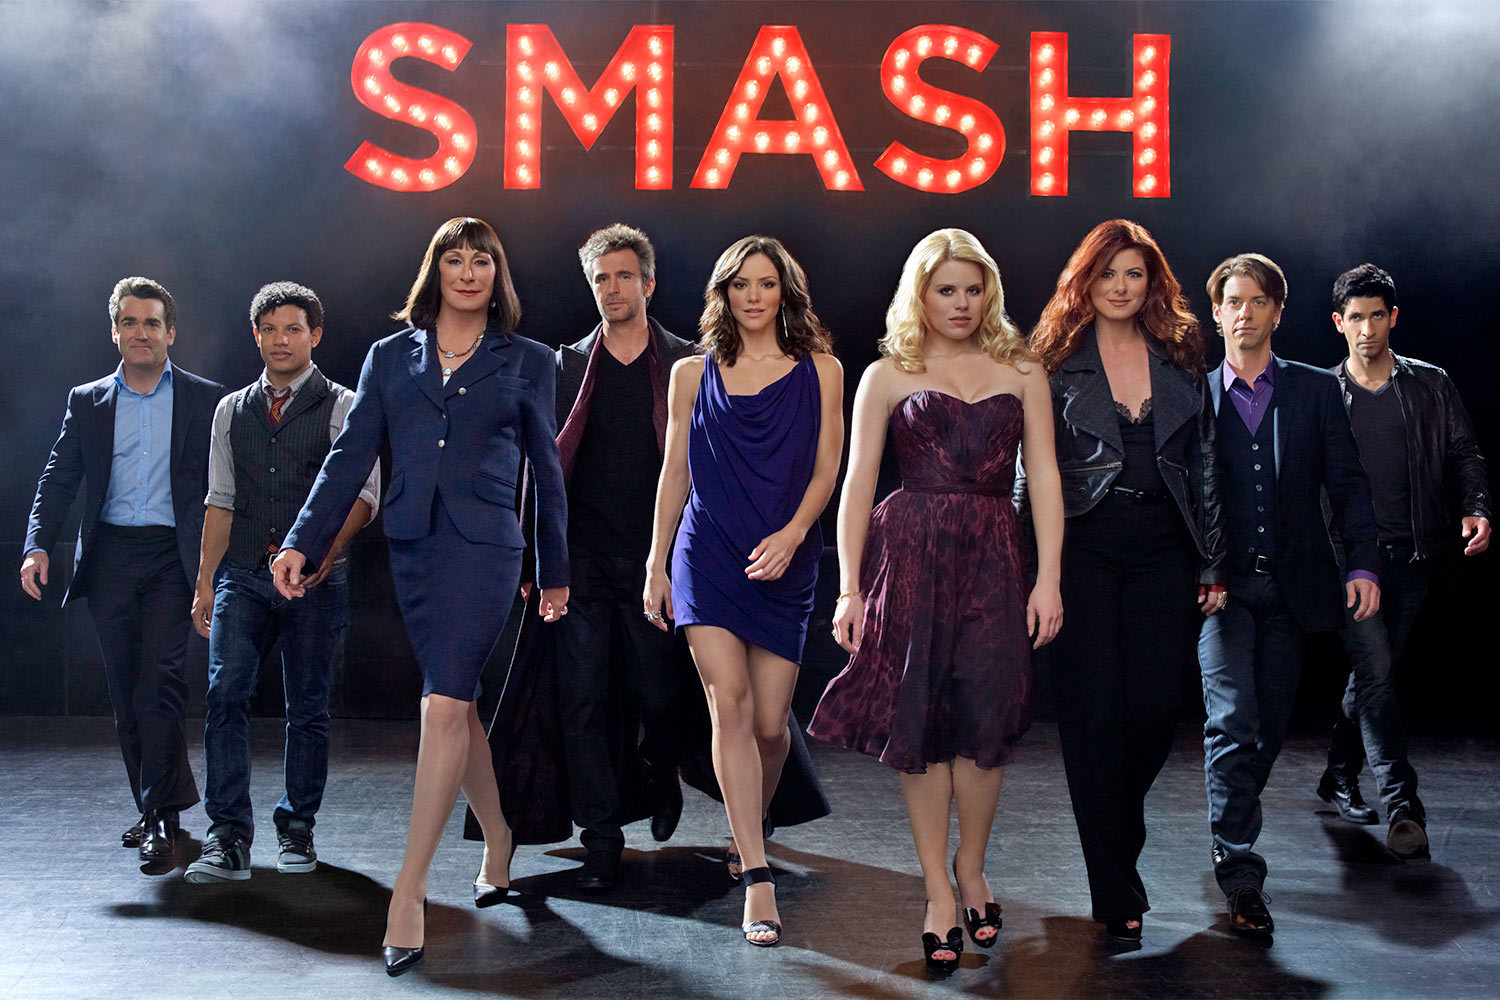 The Season 1 cast of NBC's Smash (2012)